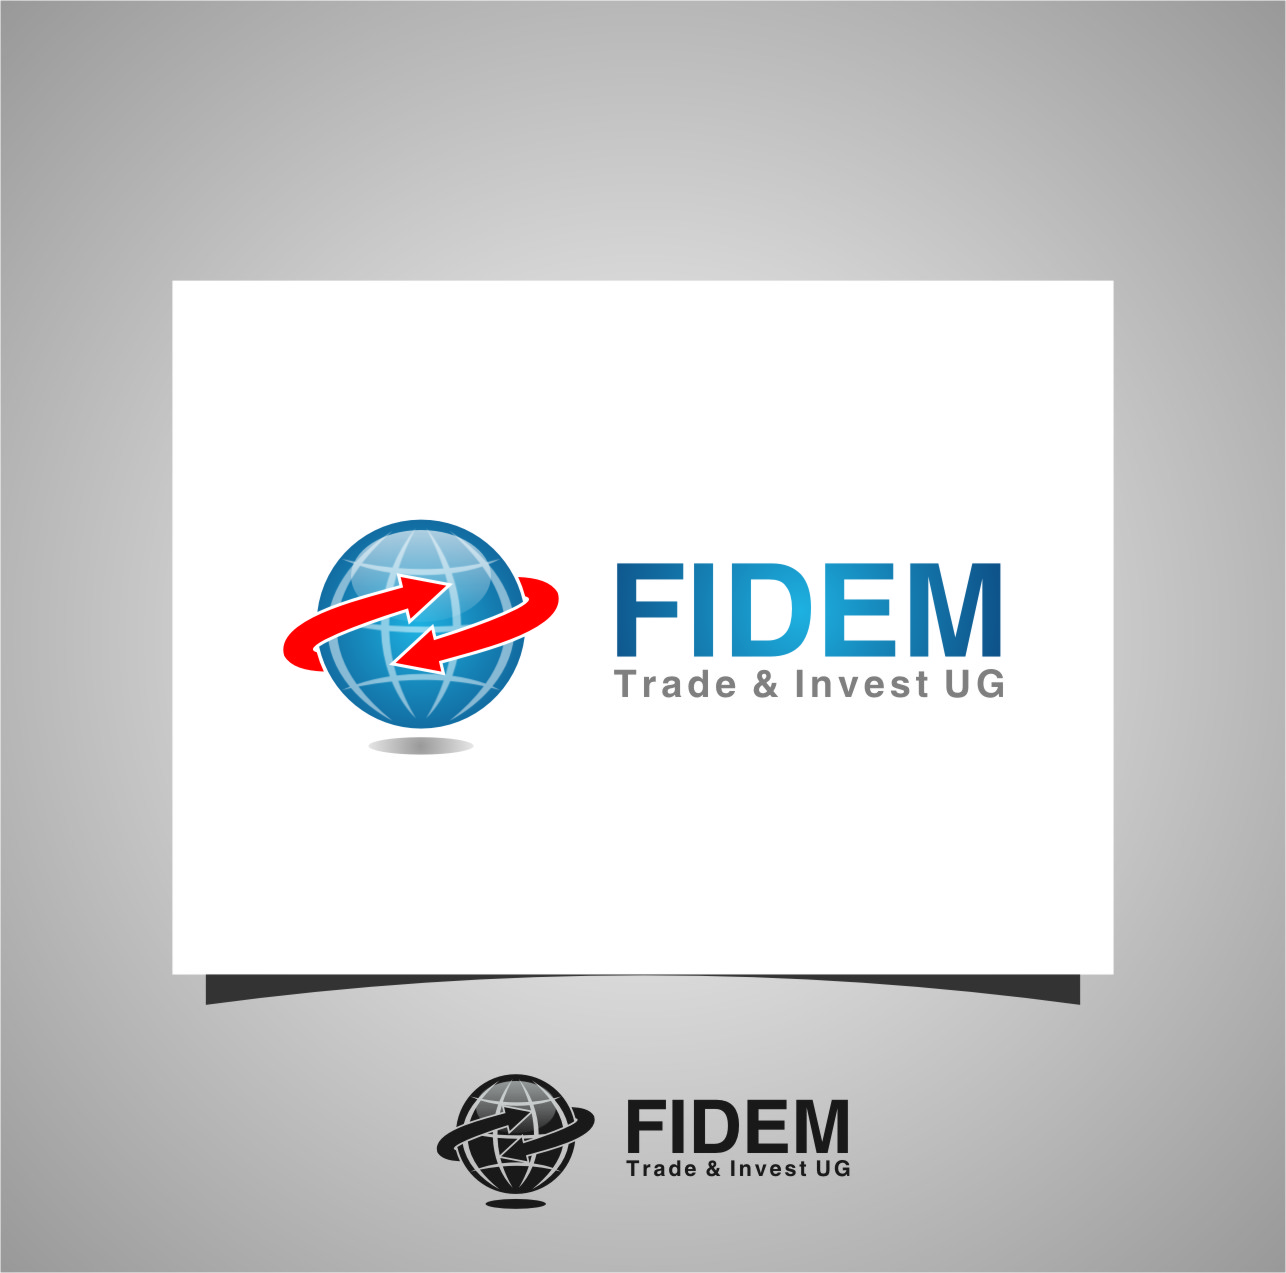 Logo Design by RasYa Muhammad Athaya - Entry No. 54 in the Logo Design Contest Professional Logo Design for FIDEM Trade & Invest UG.